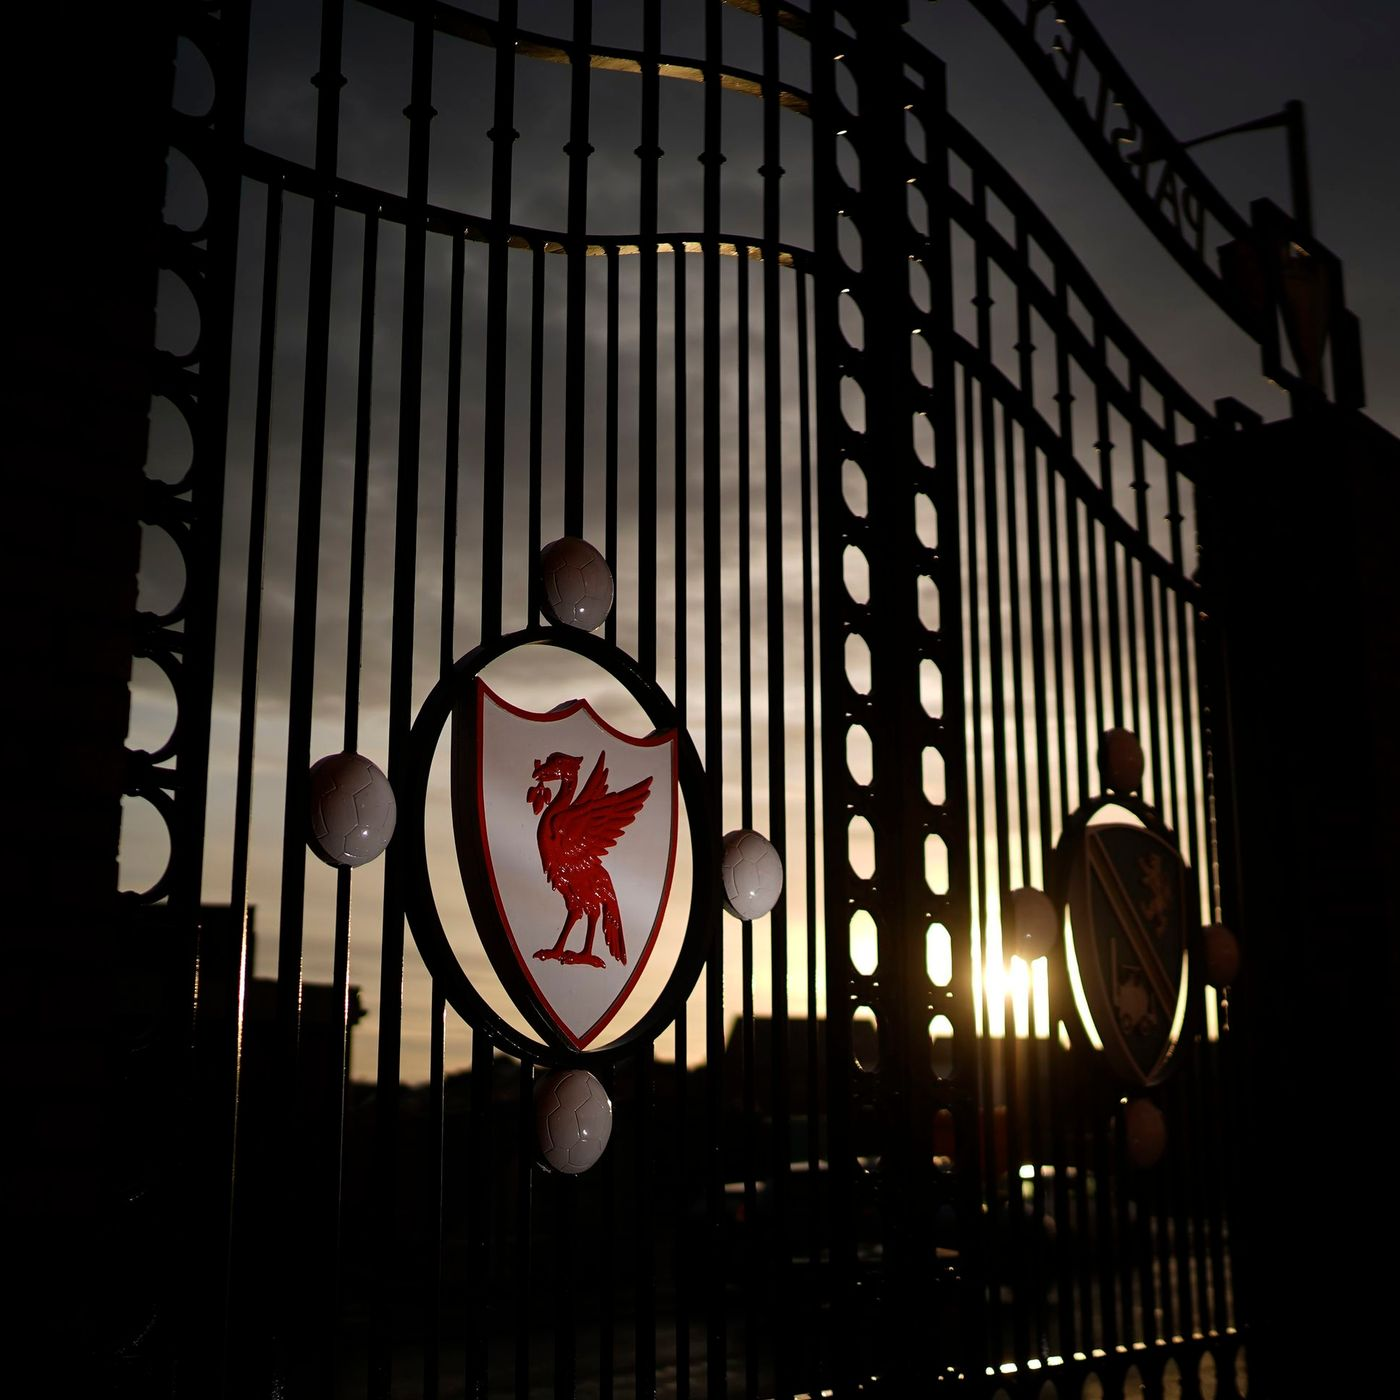 The Agenda: A bittersweet day for Liverpool fans as void left by football rightfully begins to take hold